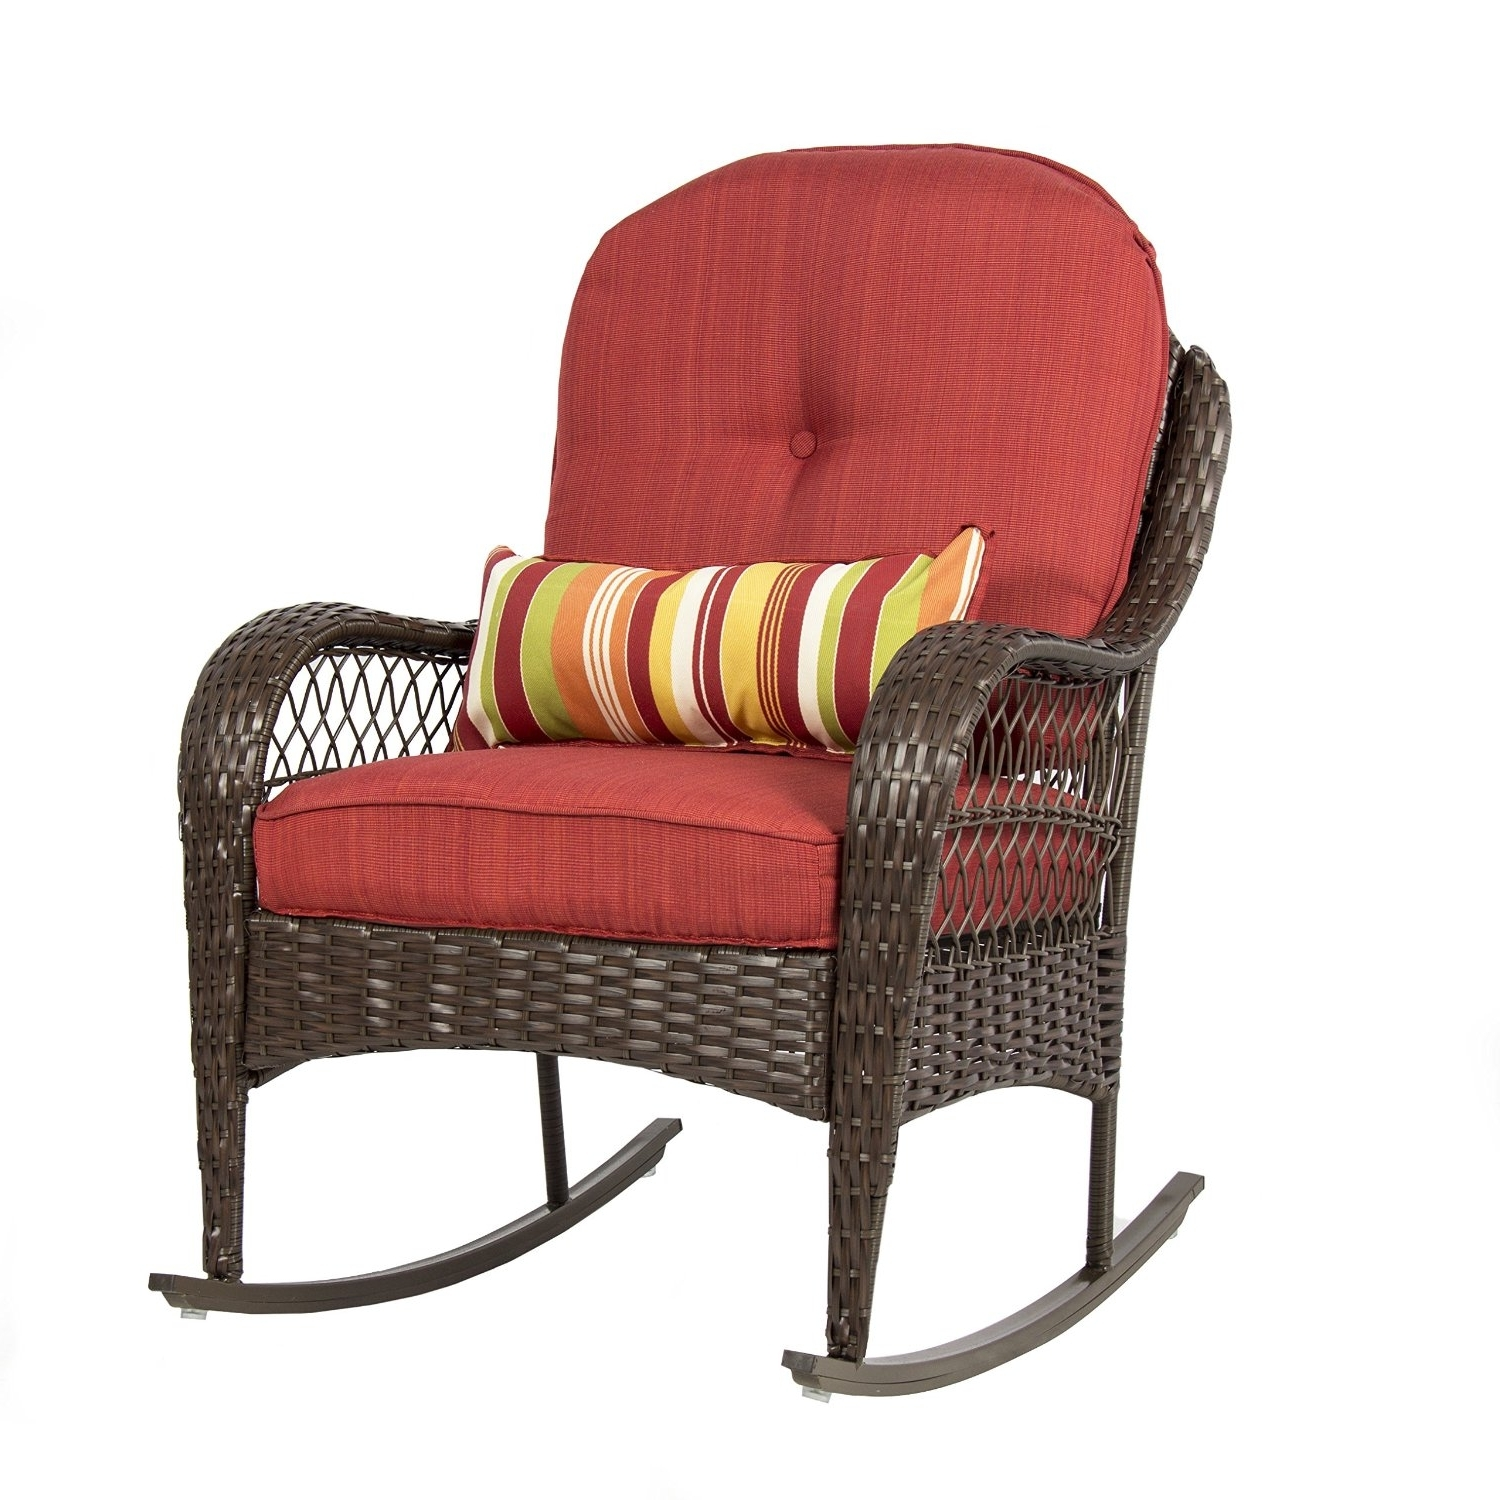 Most Recent Kevinjohnsonformayor – Page 9 – Rocking Chair Reborn Inside Padded Patio Rocking Chairs (View 6 of 20)